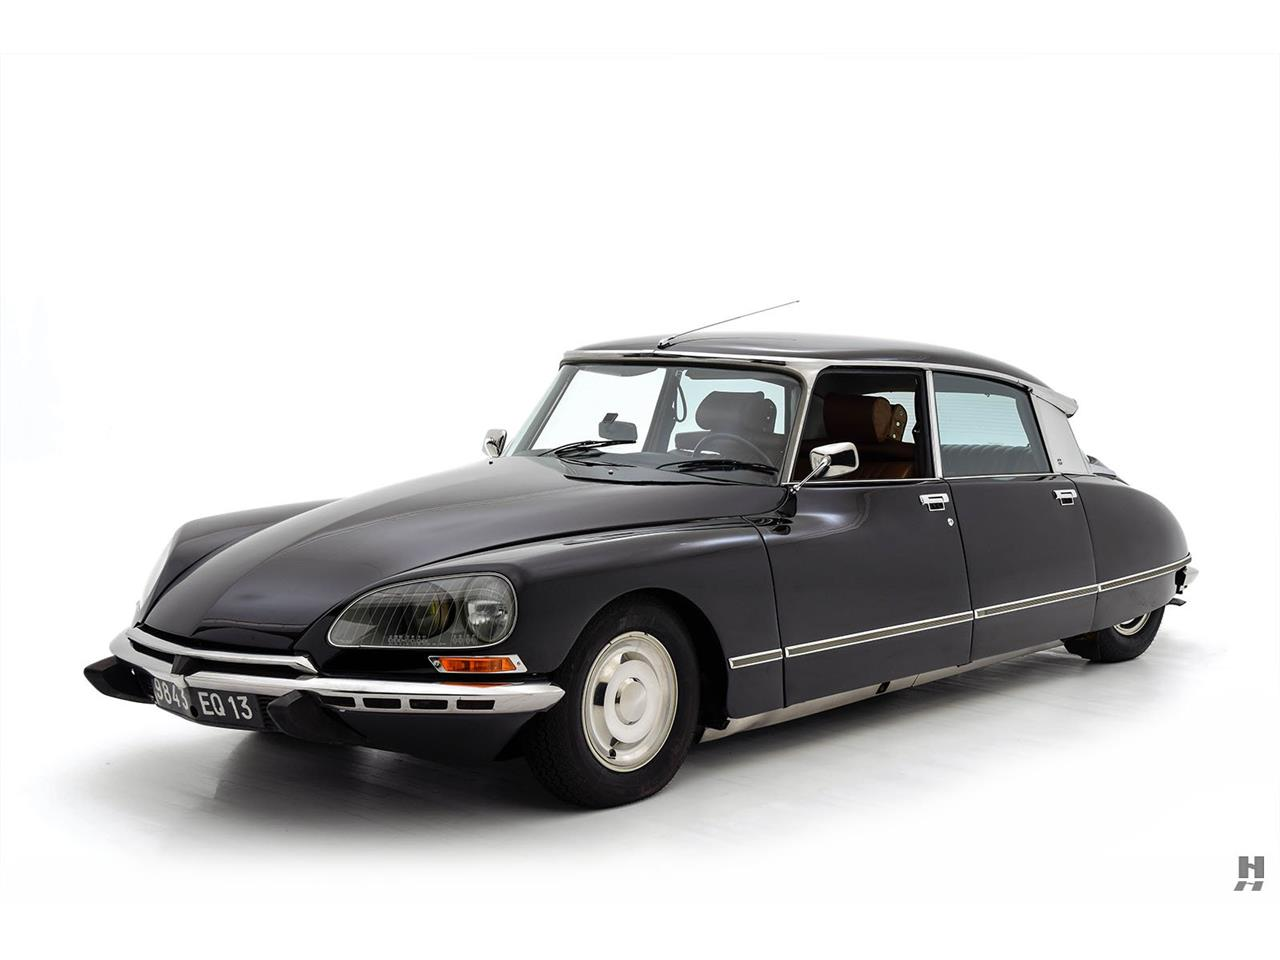 Large Picture of 1972 Citroen DS21 Pallas located in Saint Louis Missouri - $59,500.00 Offered by Hyman Ltd. Classic Cars - P3WY